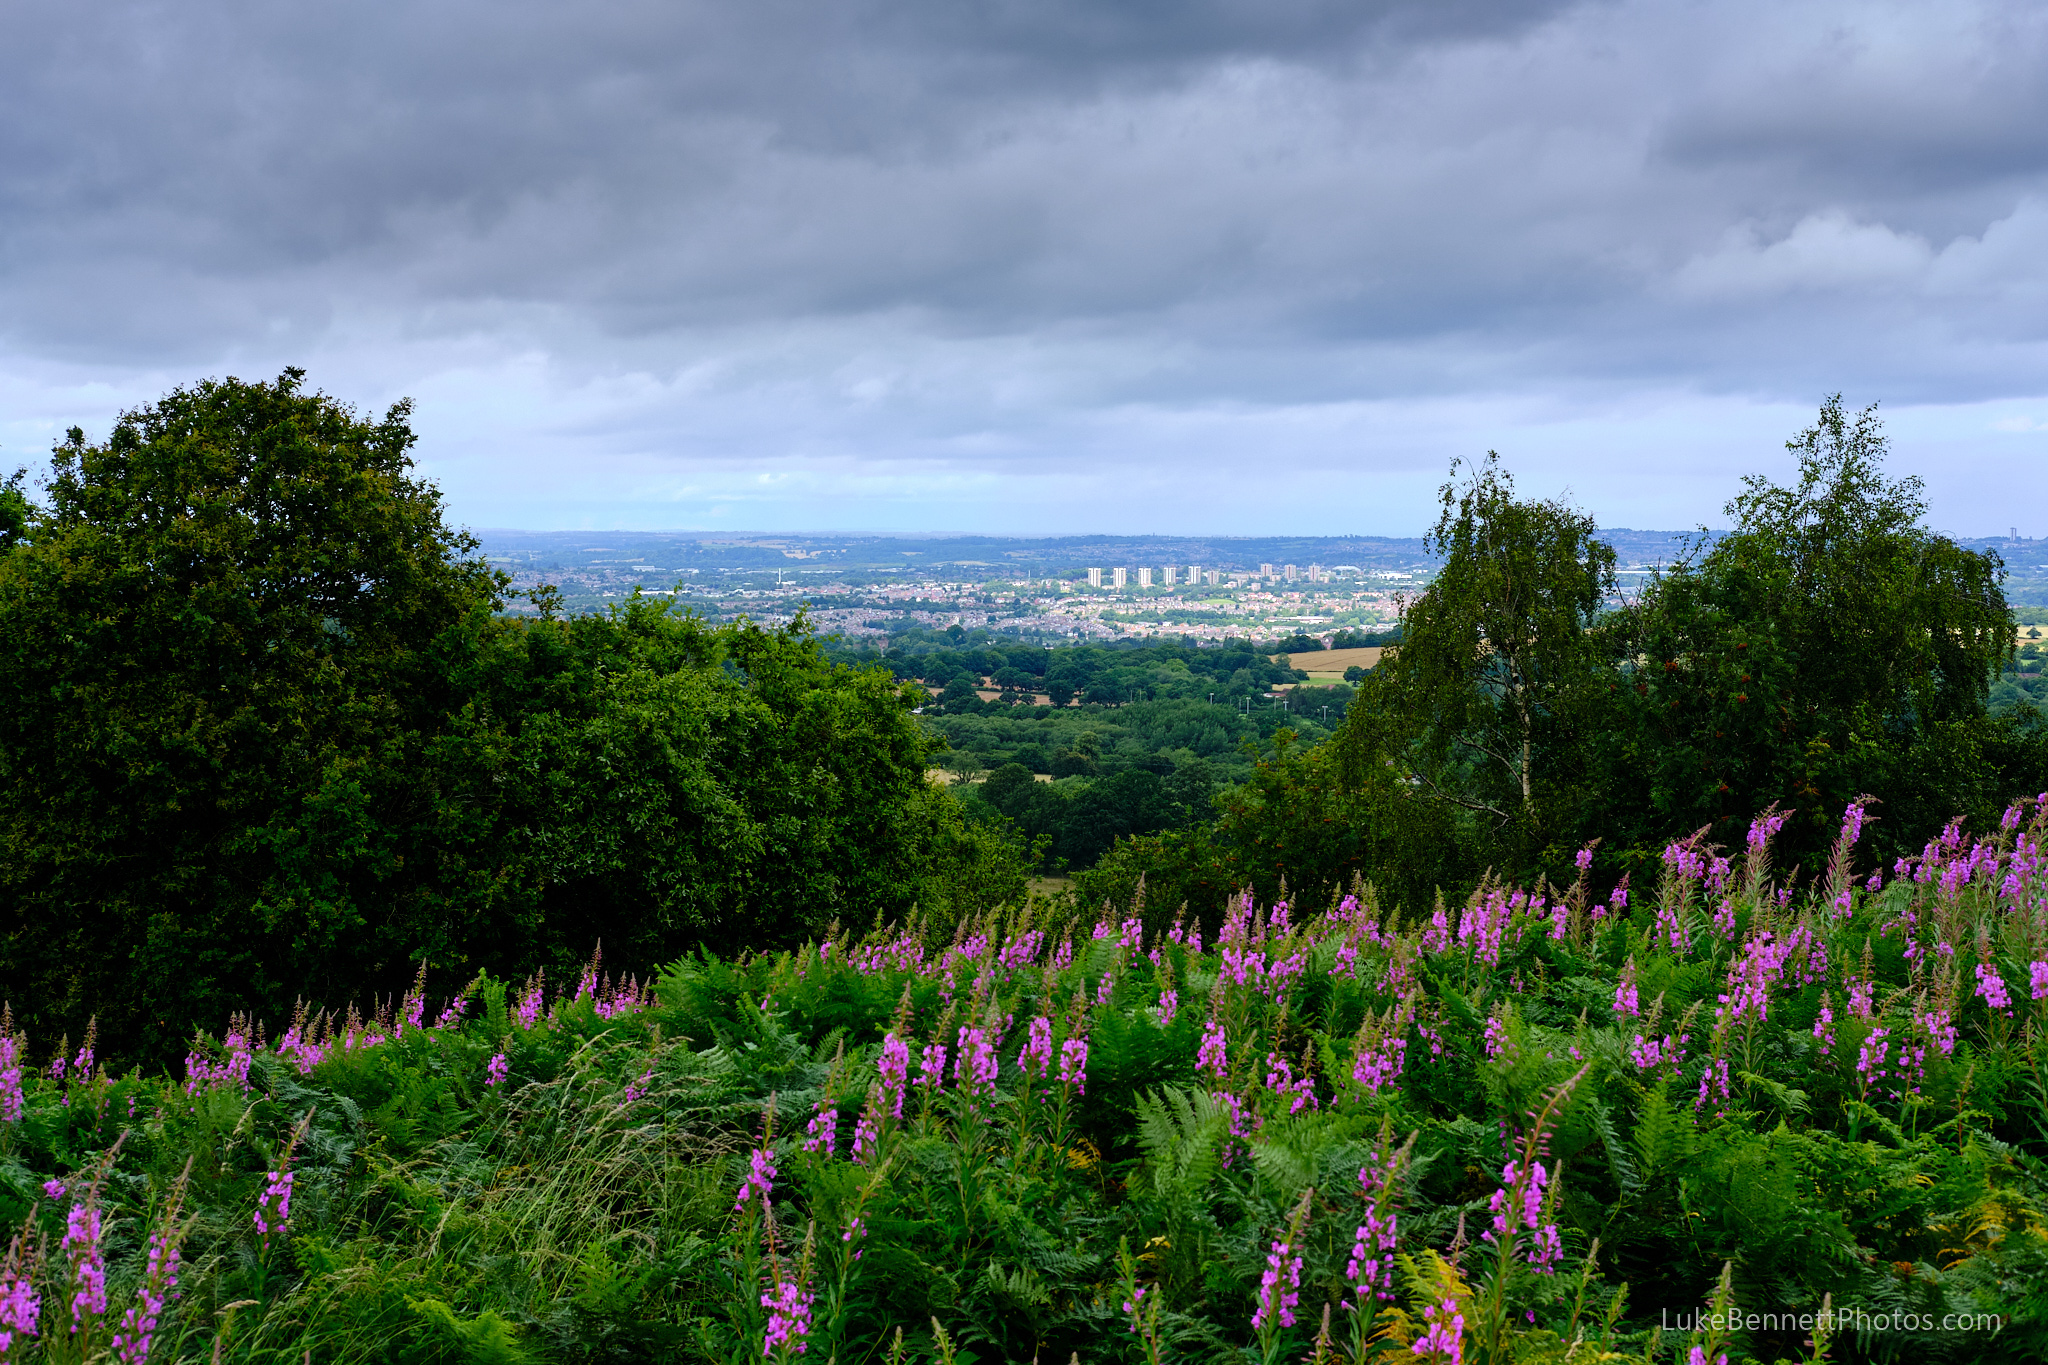 The view of Stourbridge from the Clent Hills